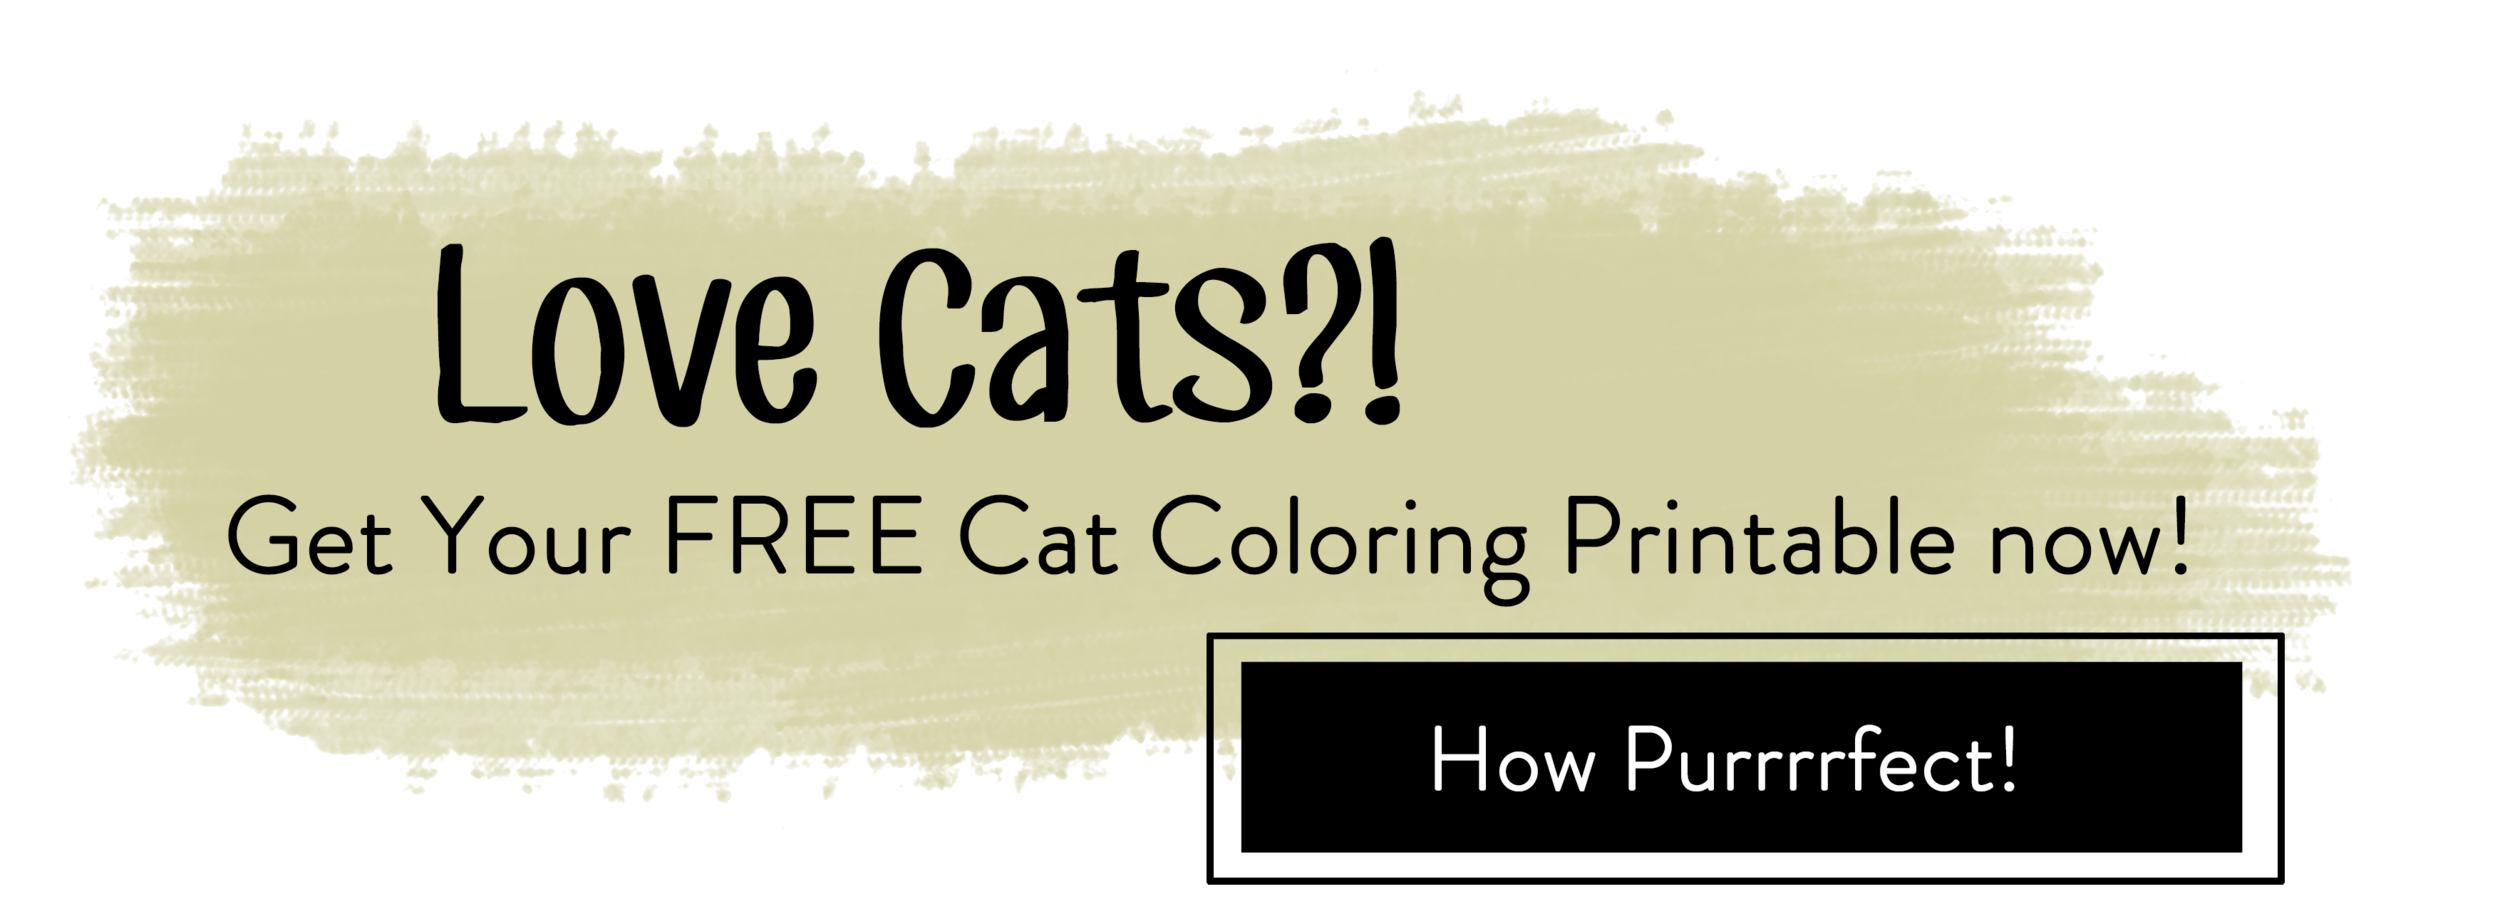 cat coloring pages correct.png